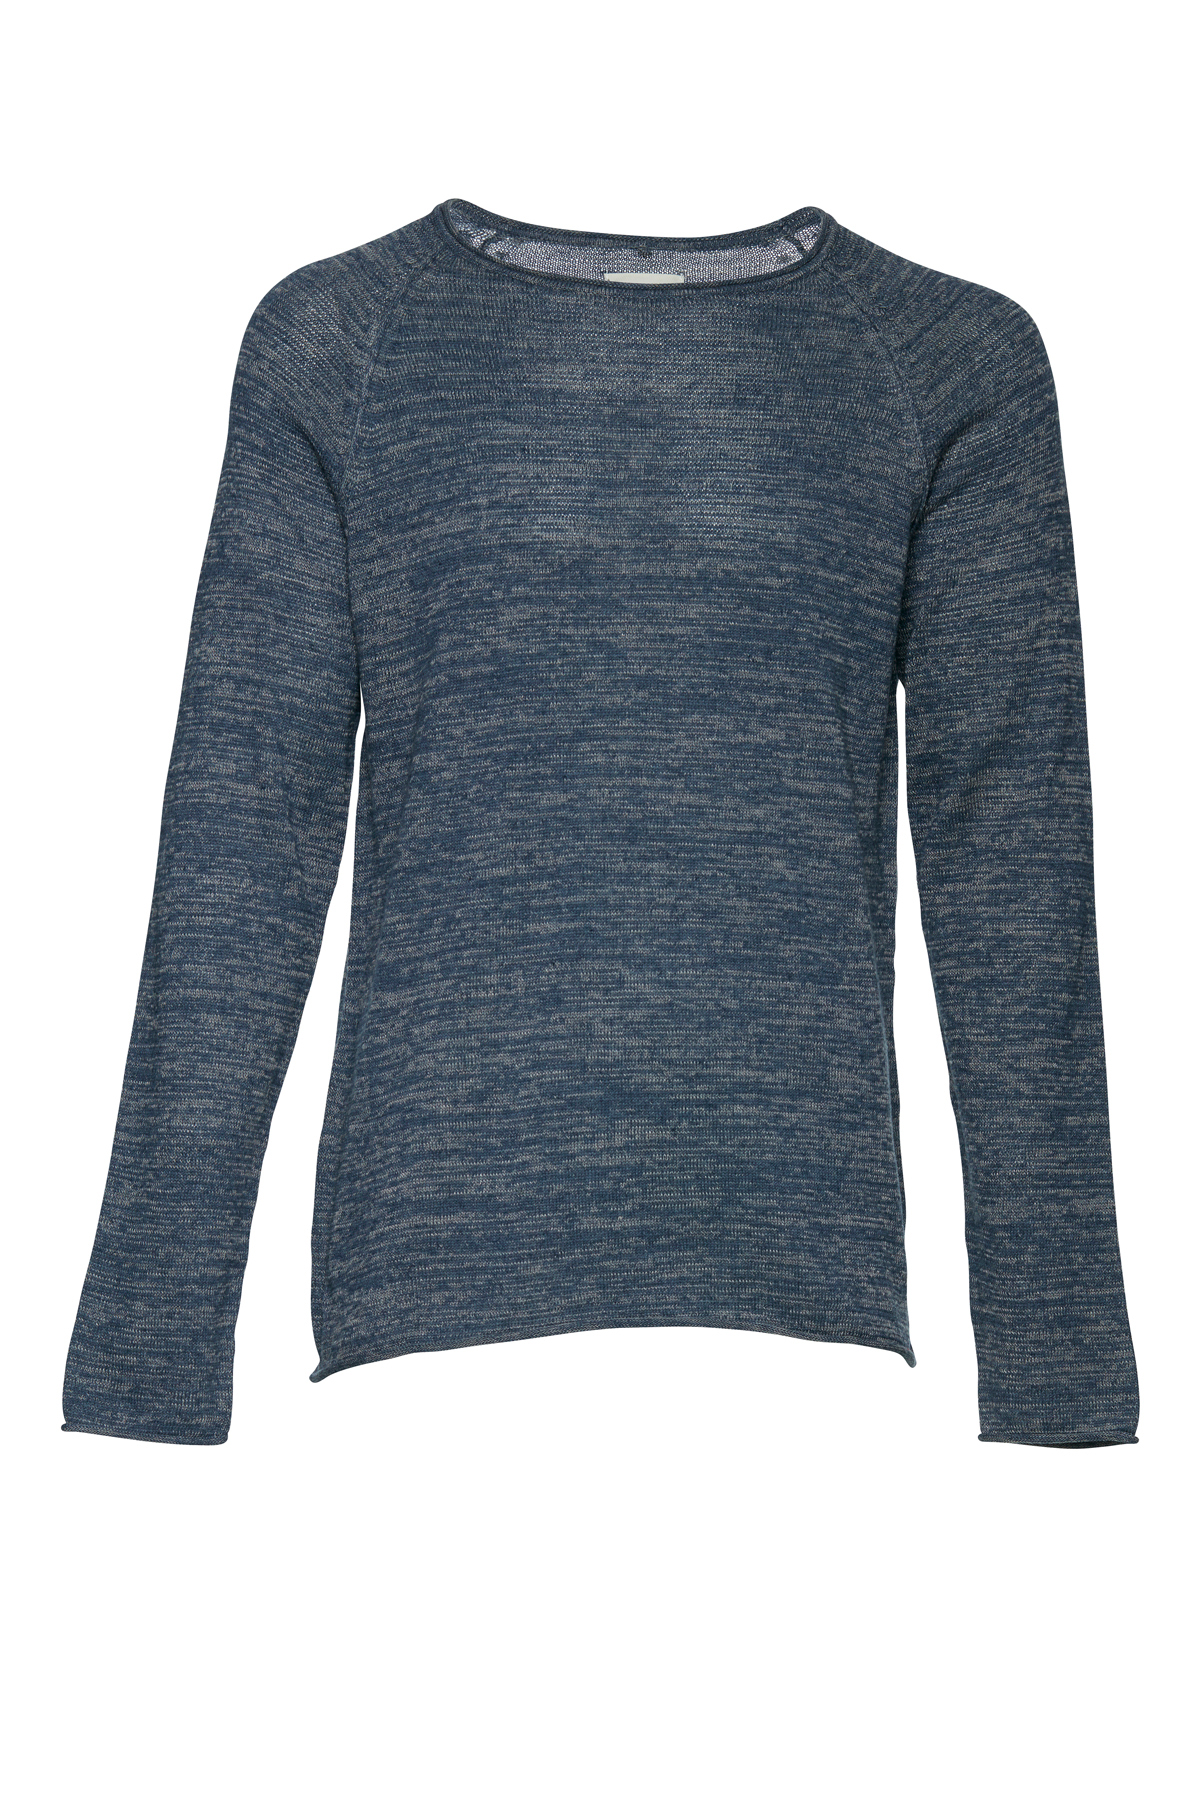 Ensign blue Strikpullover – Køb Ensign blue Strikpullover fra str. S-XXL her